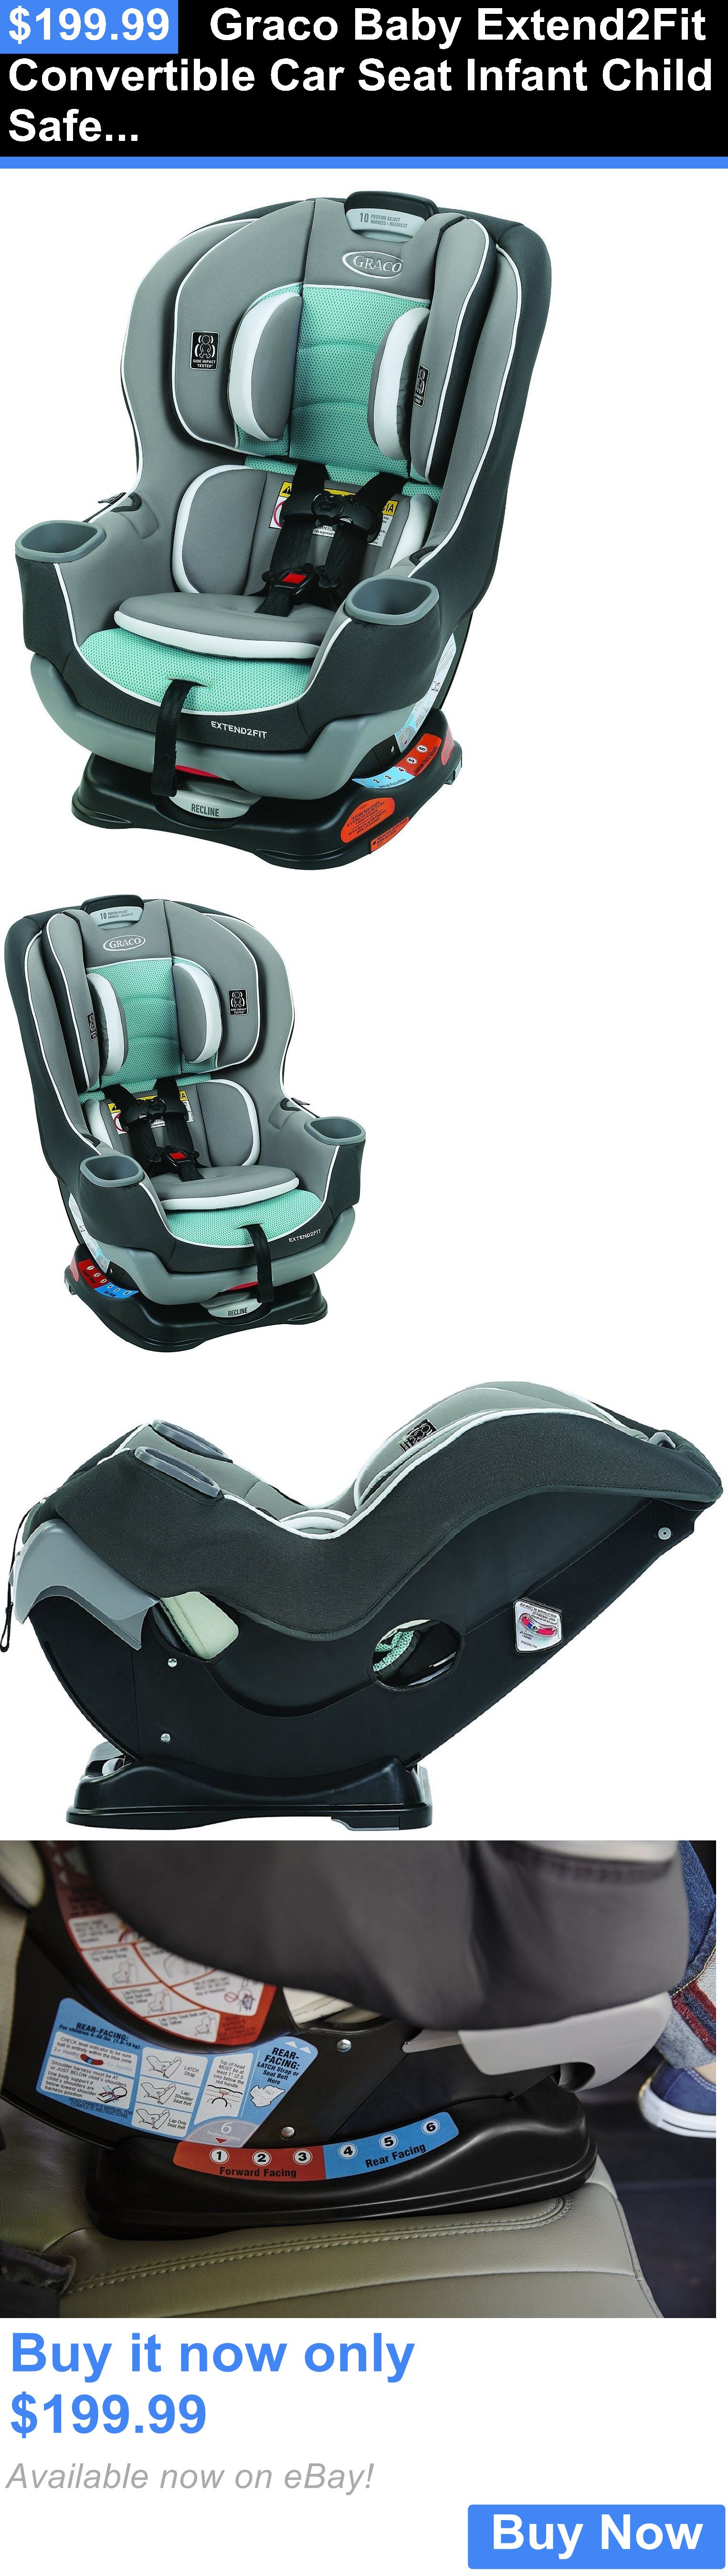 Baby: Graco Baby Extend2fit Convertible Car Seat Infant Child Safety ...